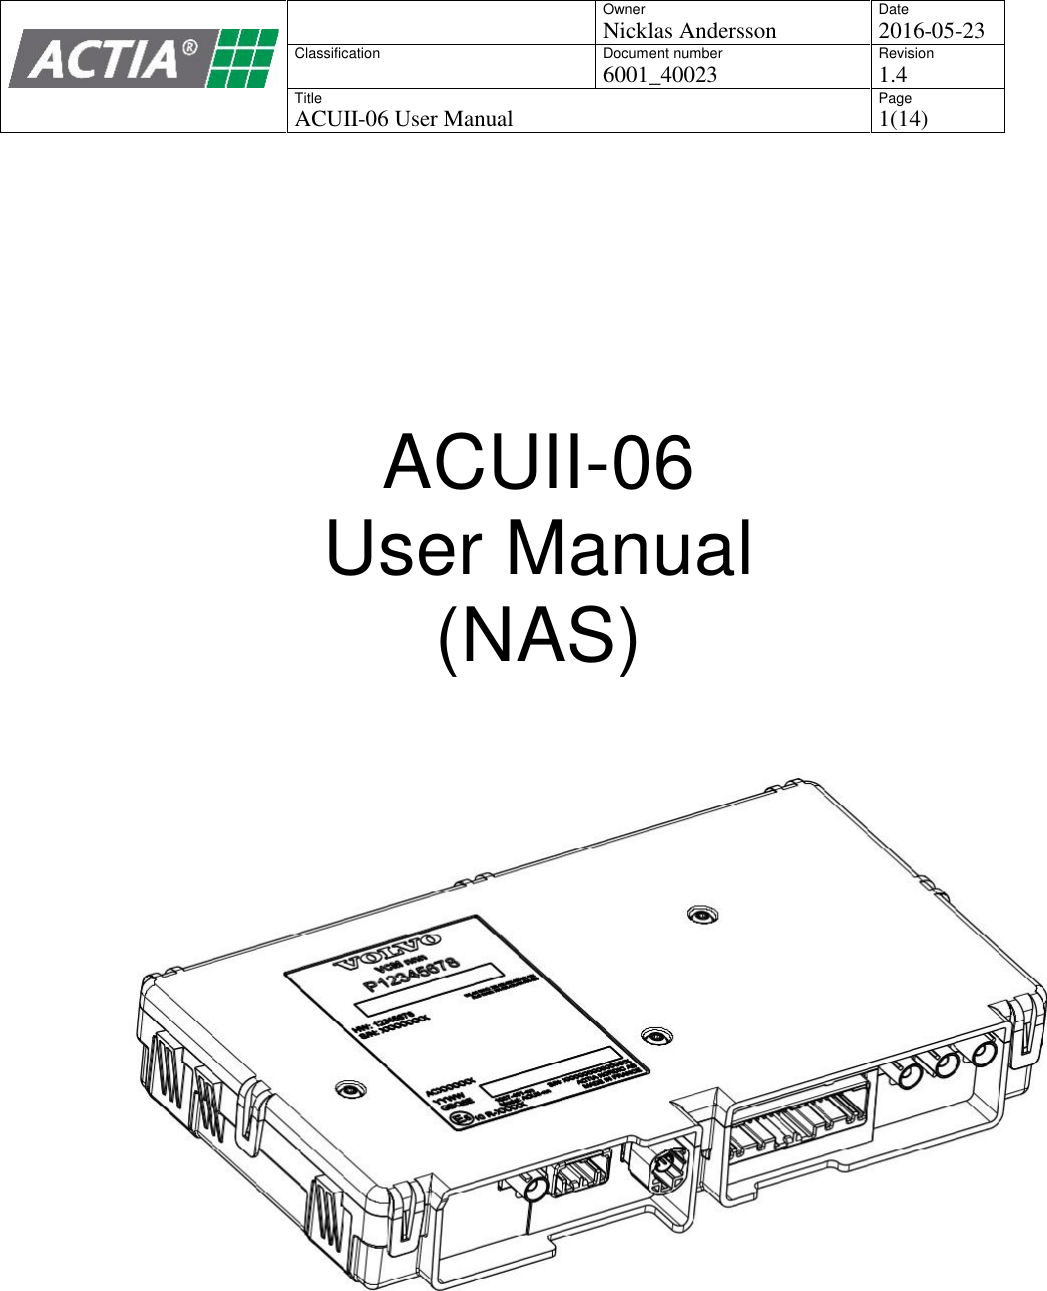 ACTIA Nordic ACUII-06 ACUII-06 User Manual 6001 40023